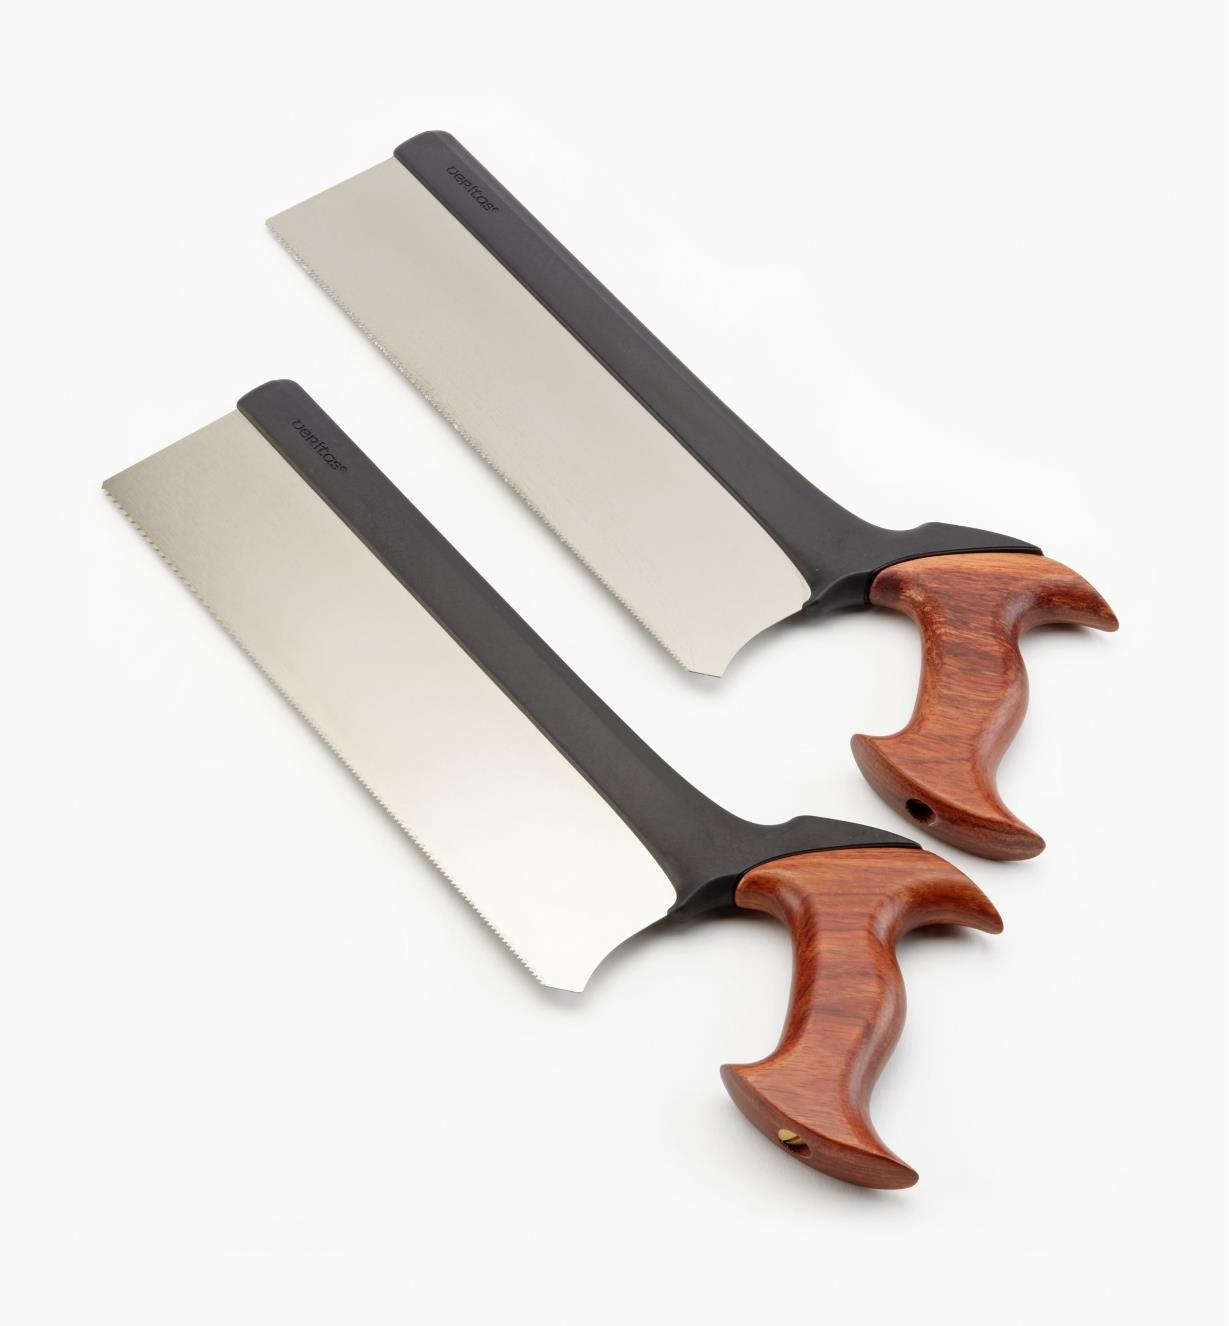 05T0710 - Pair of Veritas Carcass Saws